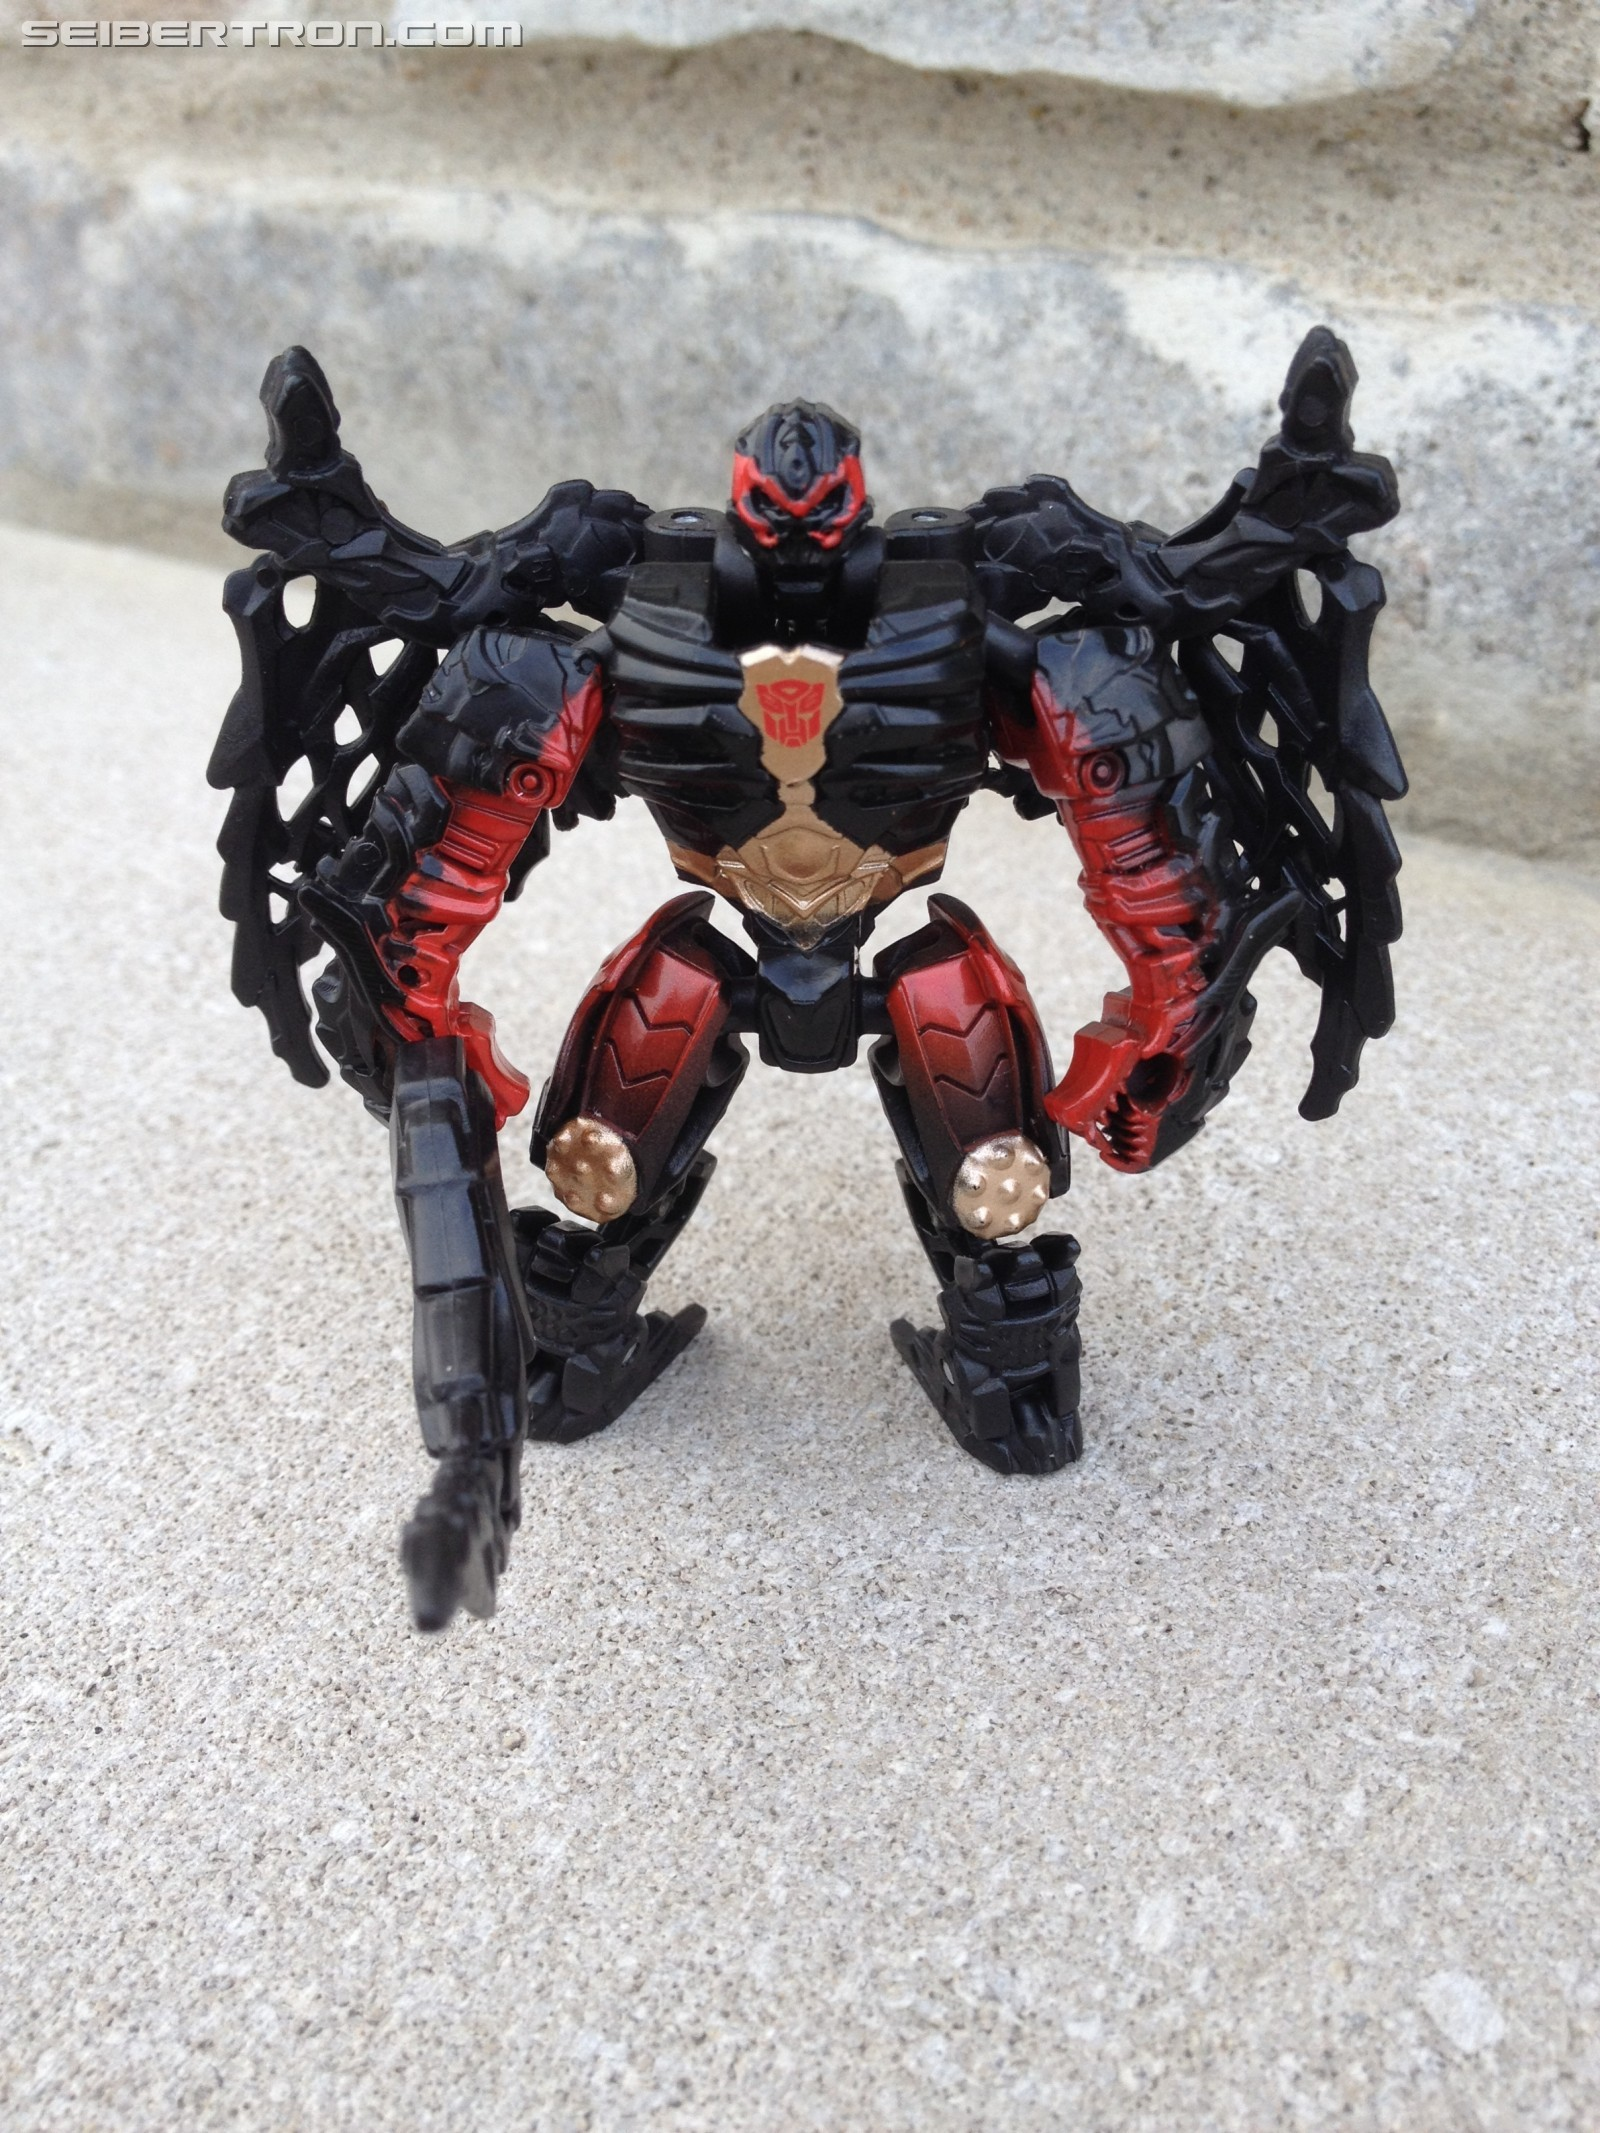 Transformers News: Pictorial Review of Legion Dragonstorm from Transformers The Last Knight